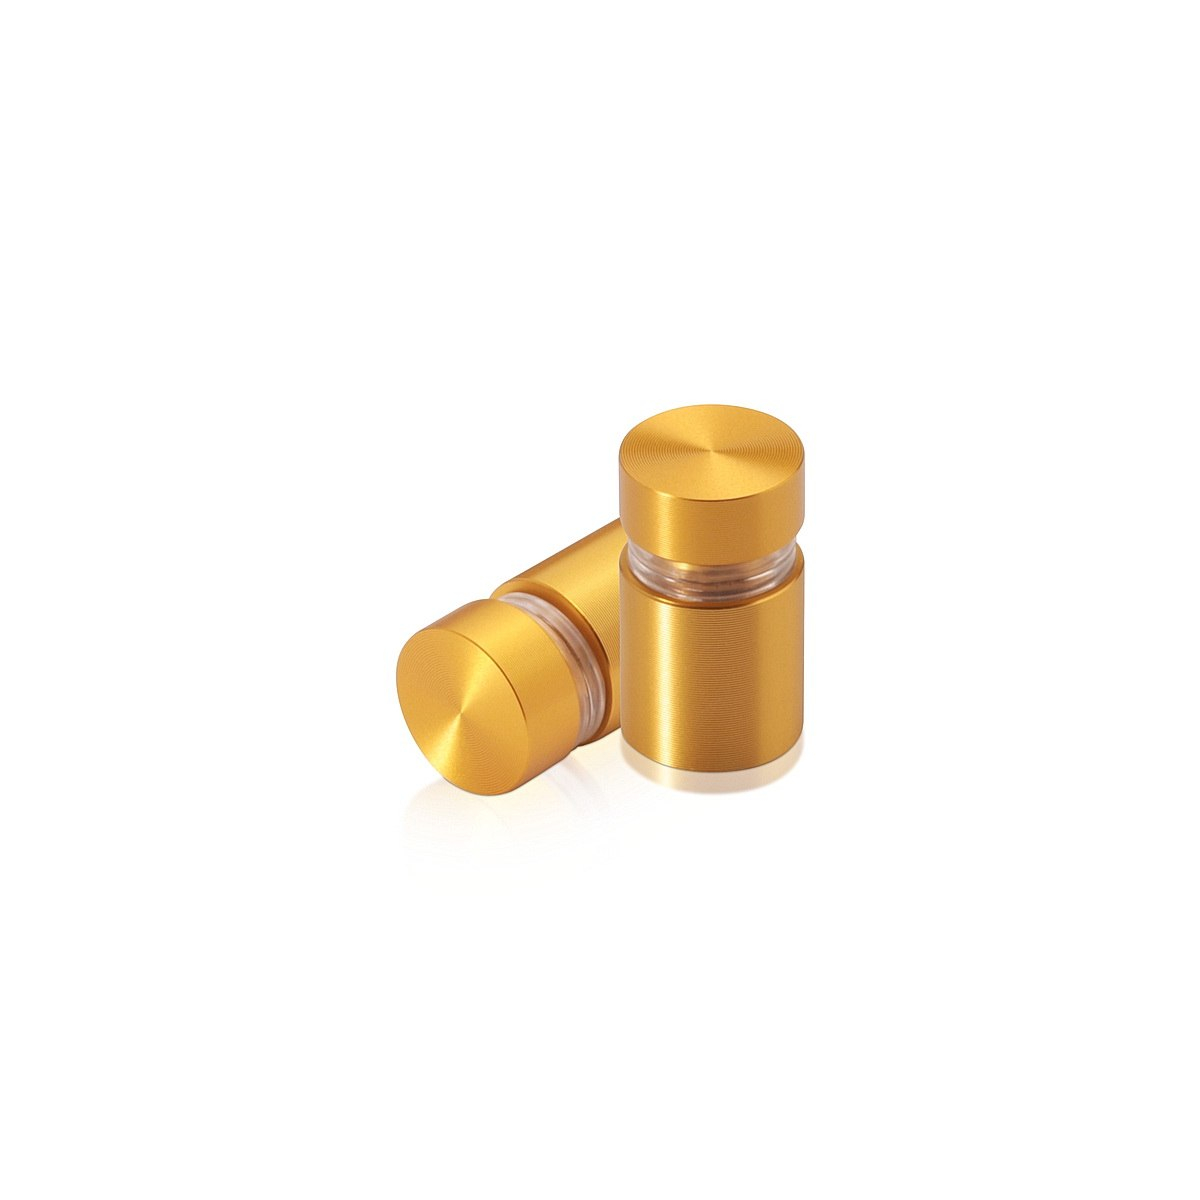 1/2'' Diameter X 1/2'' Barrel Length, Aluminum Flat Head Standoffs, Gold Anodized Finish Easy Fasten Standoff (For Inside / Outside use) Tamper Proof Standoff